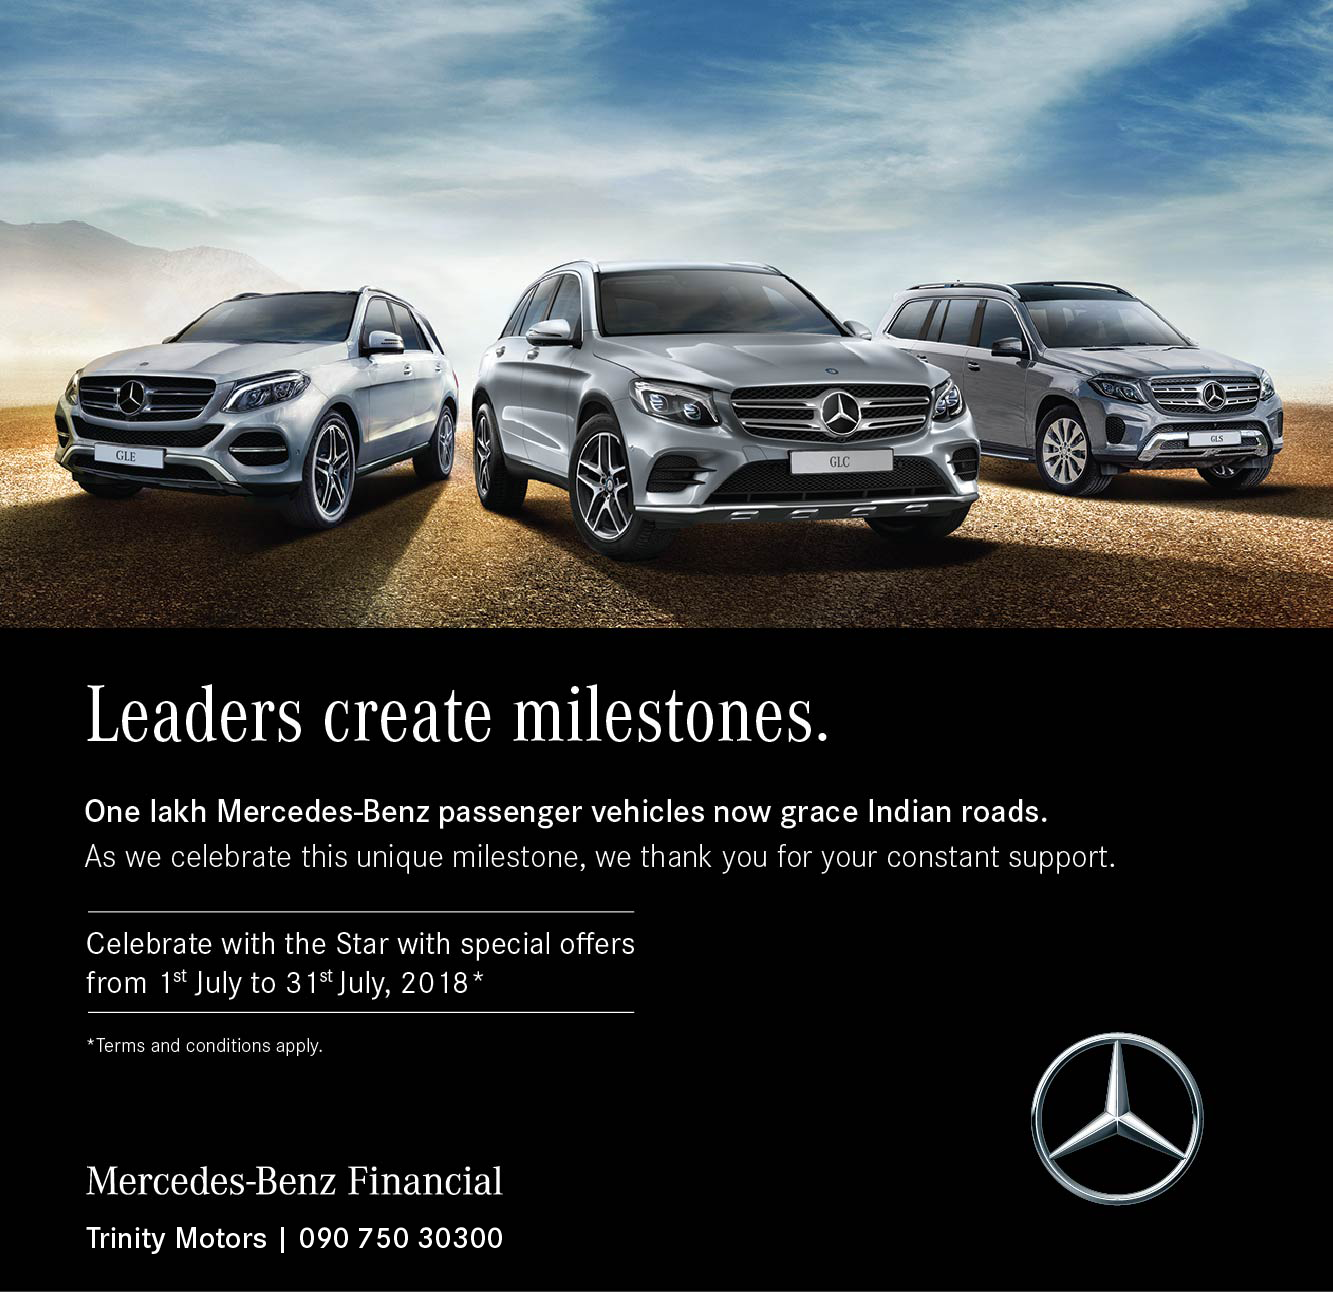 Mercedes Benz Is Now A Family Of One Lakh Passengers Join Us In The Celebration Of This Unique Milestone Celebrate With Special O Mercedes Benz Benz Mercedes